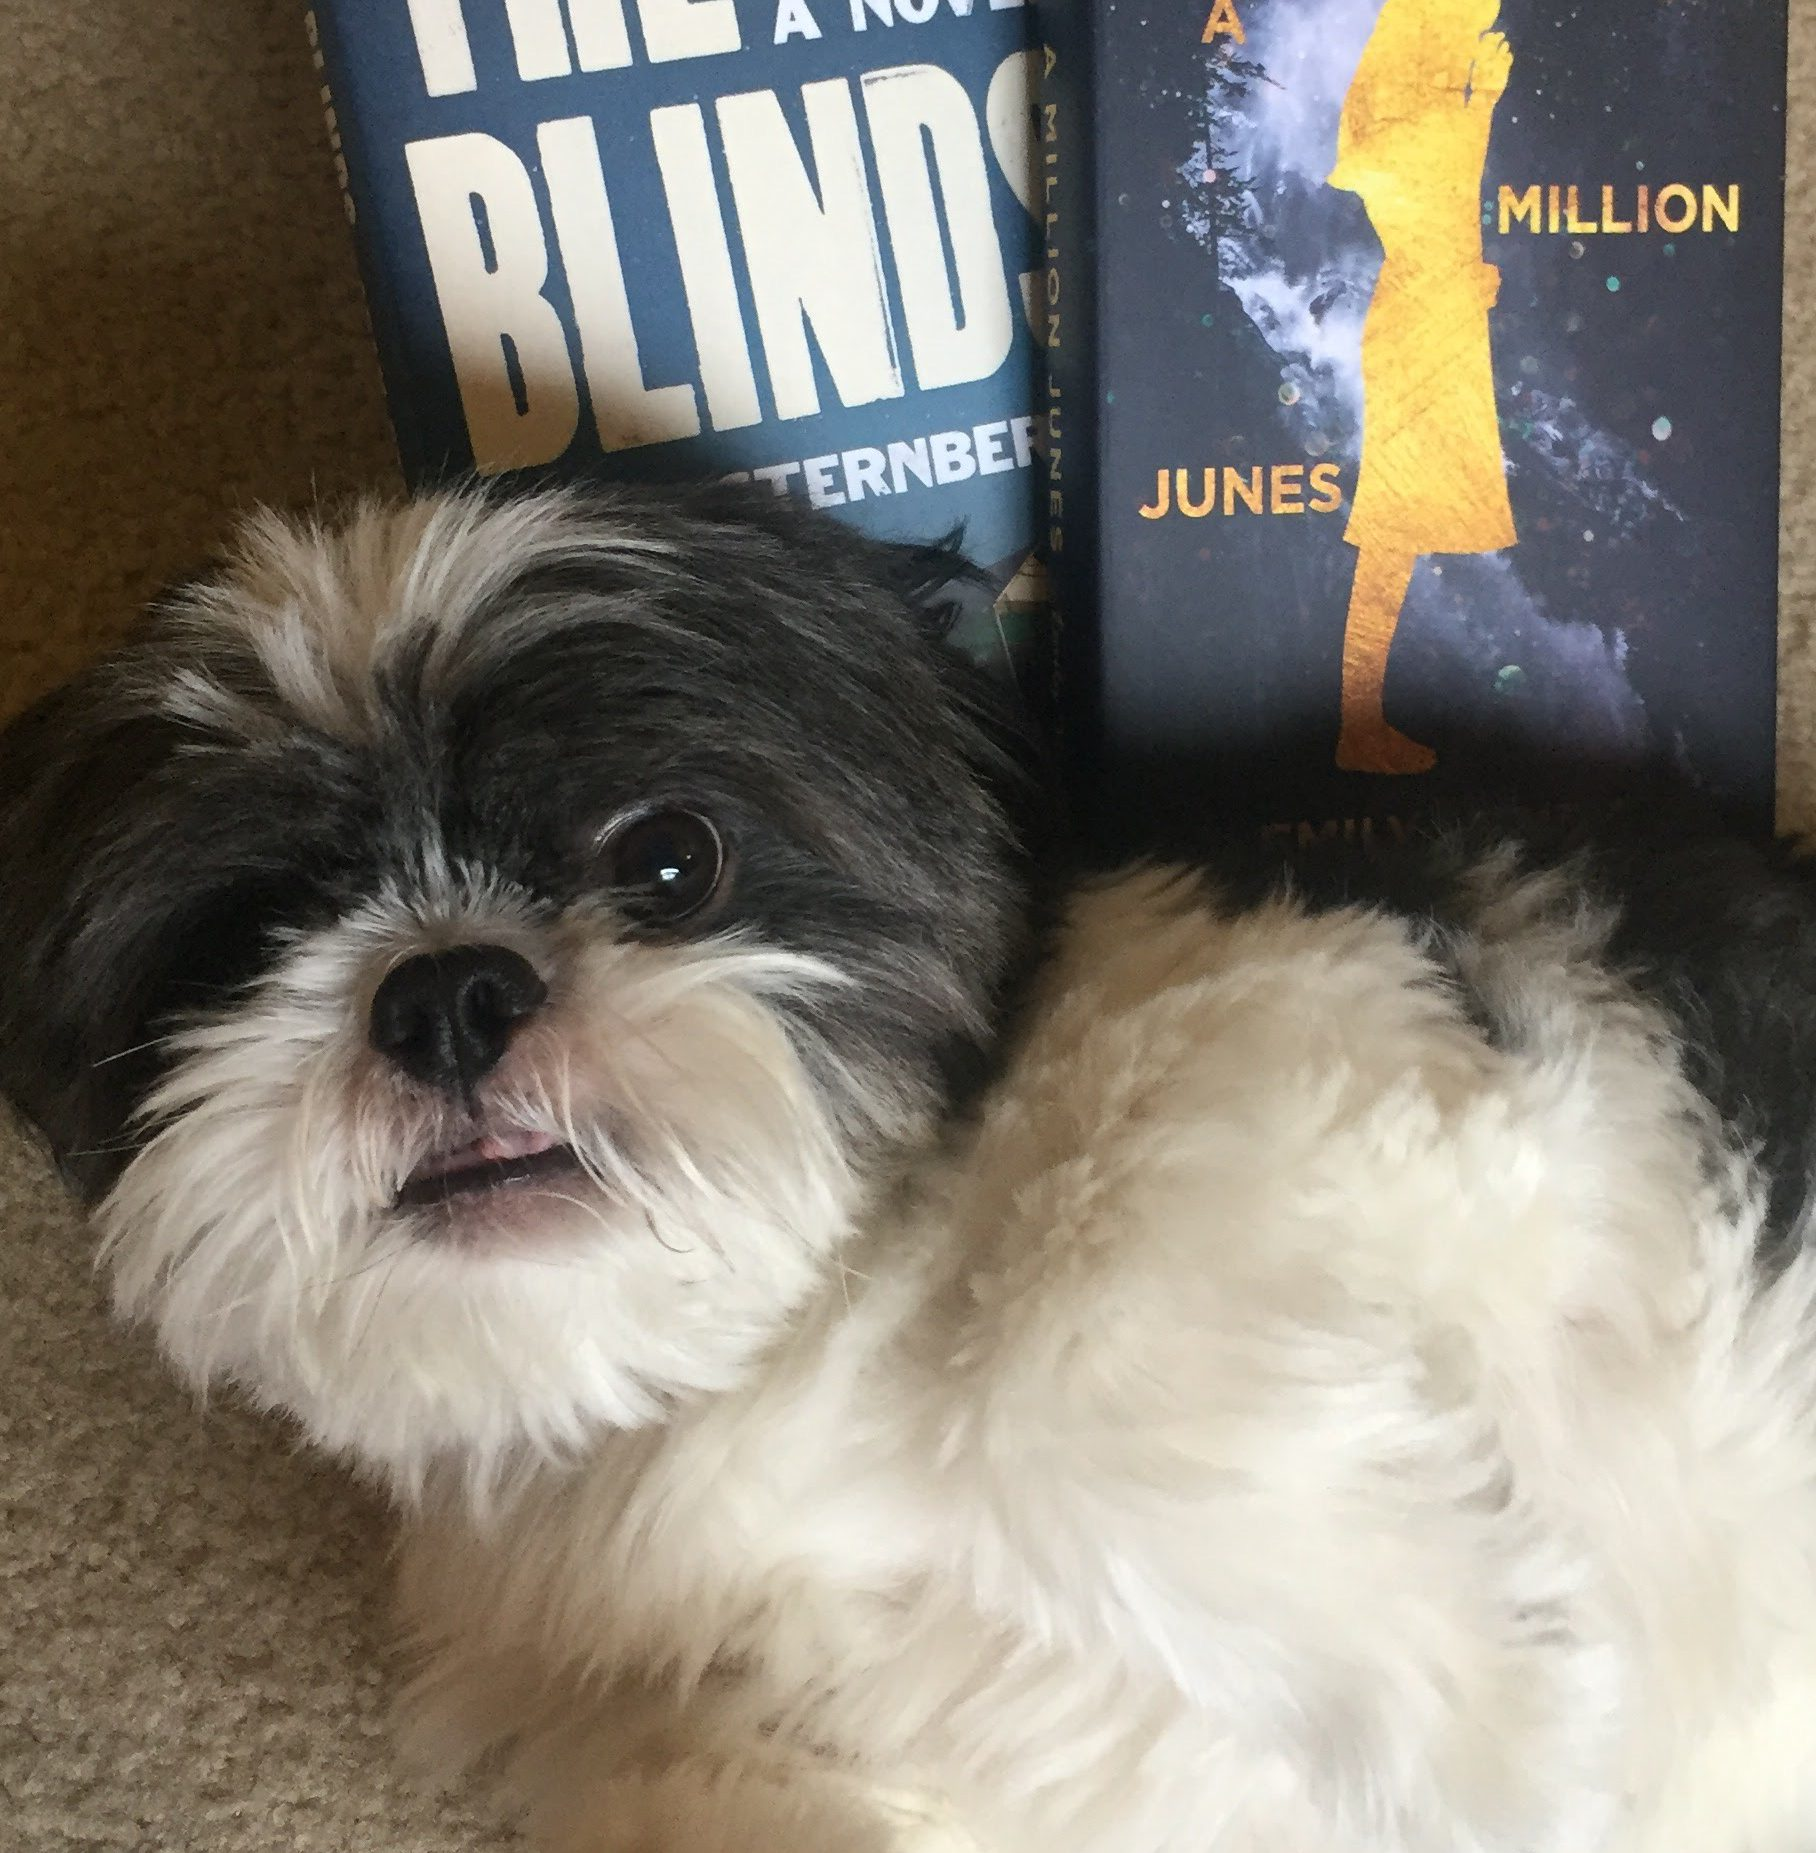 Shih Tzus & Book Reviews